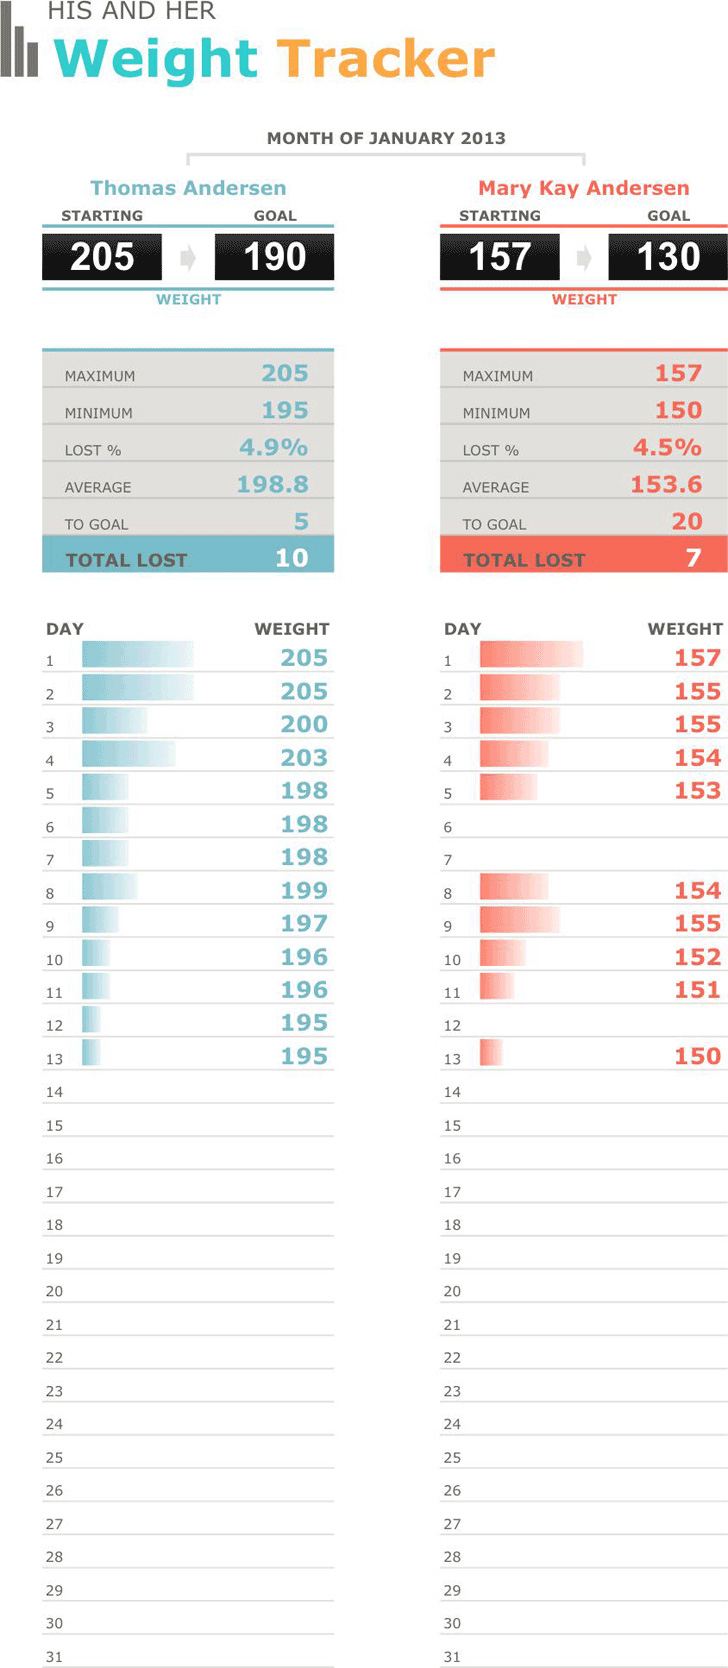 his-and-her-weight-loss-tracker-chart